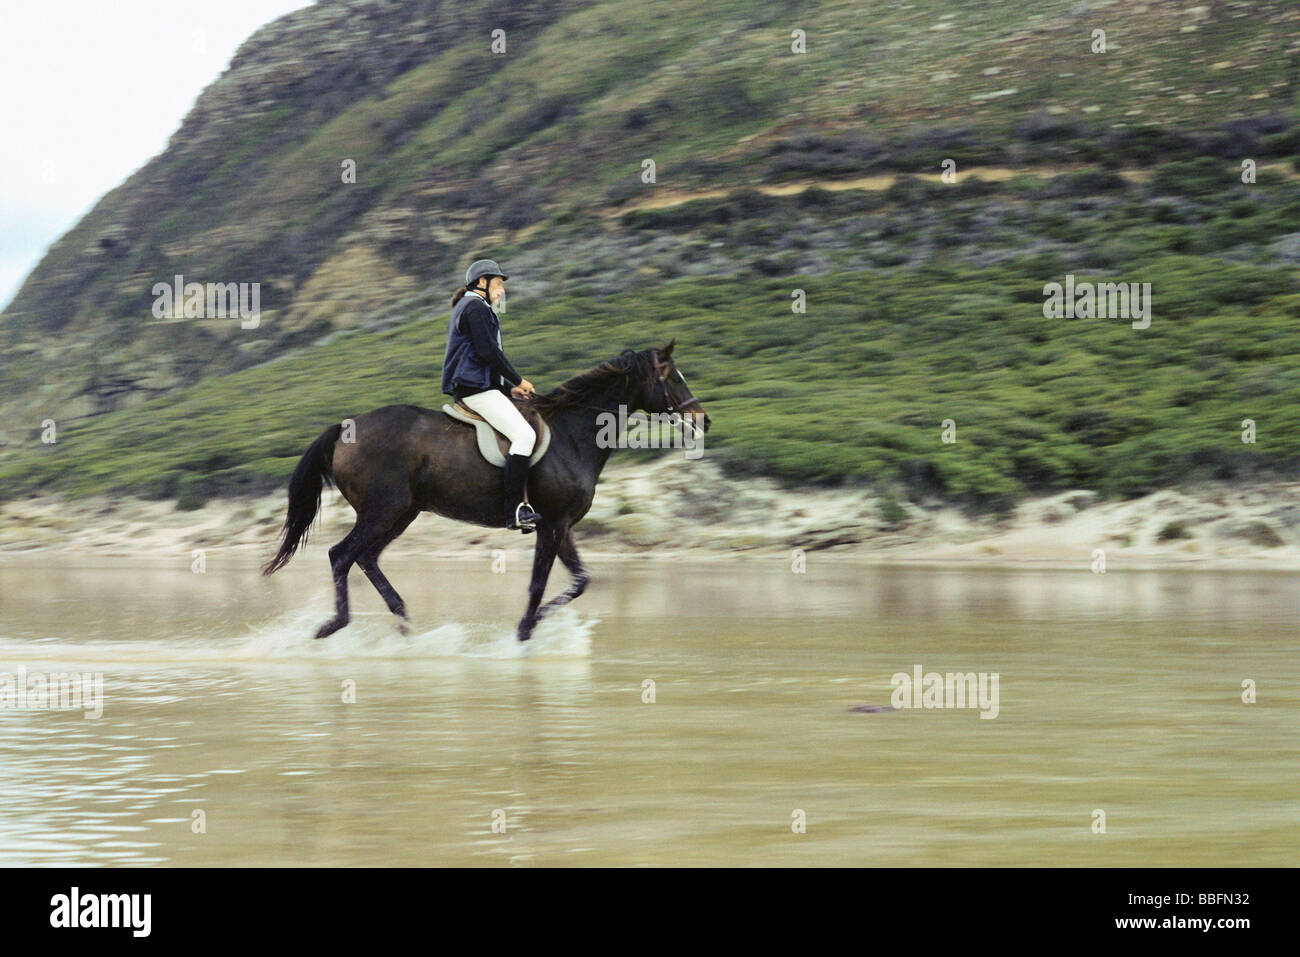 Woman riding horse in shallow water near rocky shore - Stock Image